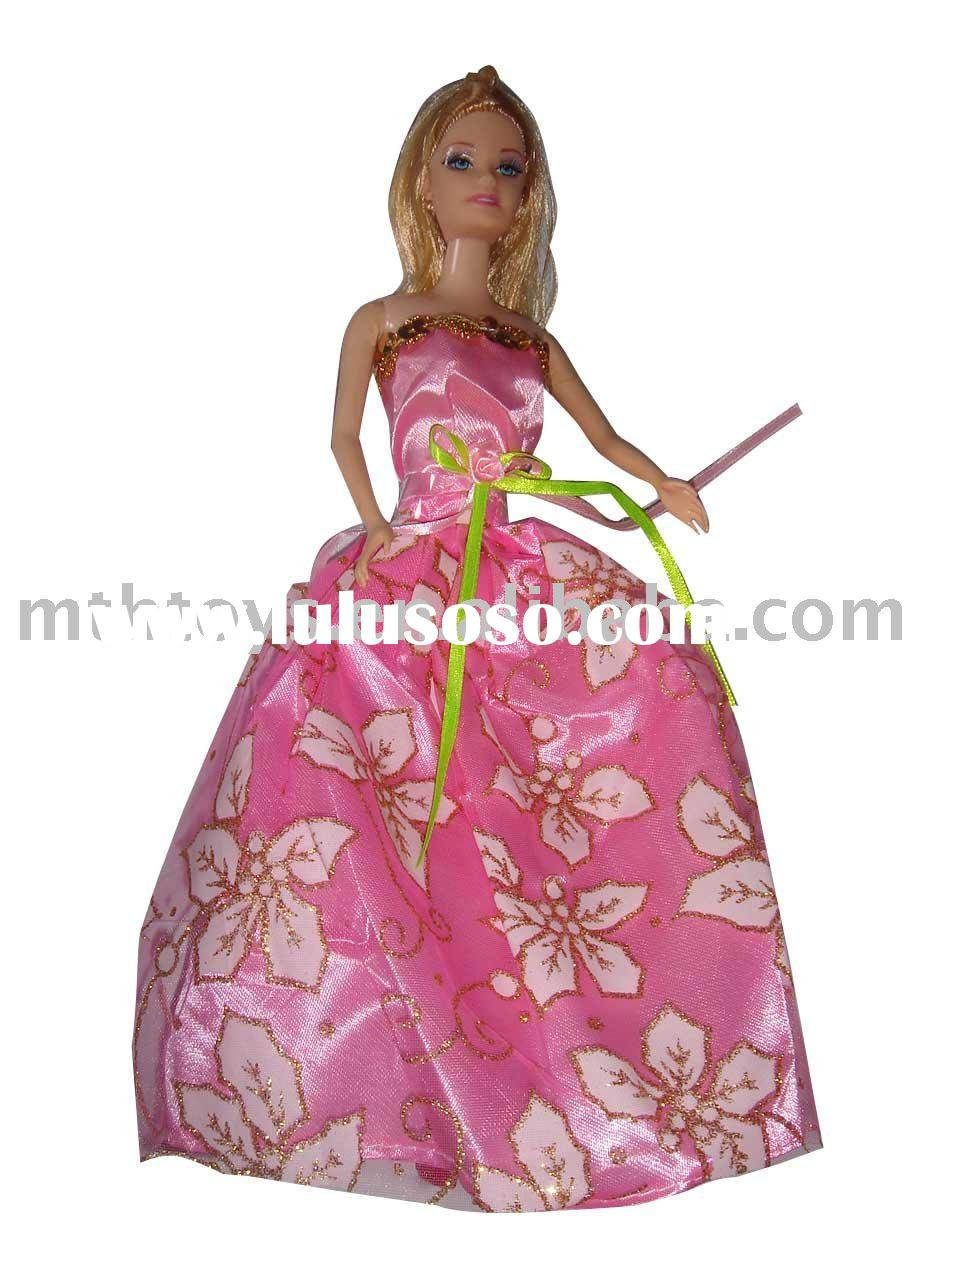 barbie doll and the unrealistic body image